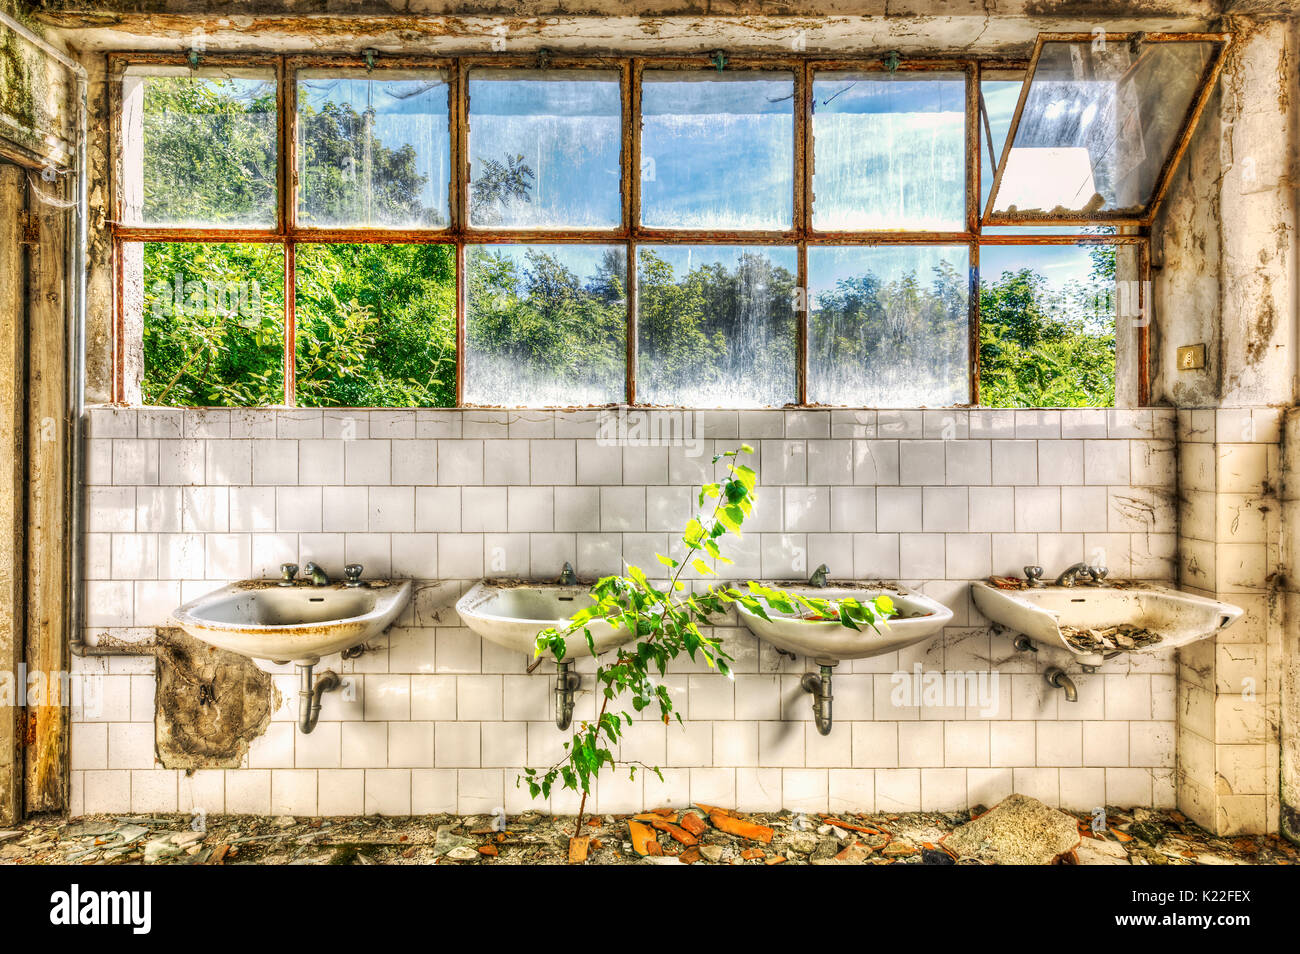 Dilapidated sinks in the washroom of an abandoned asylum - Stock Image